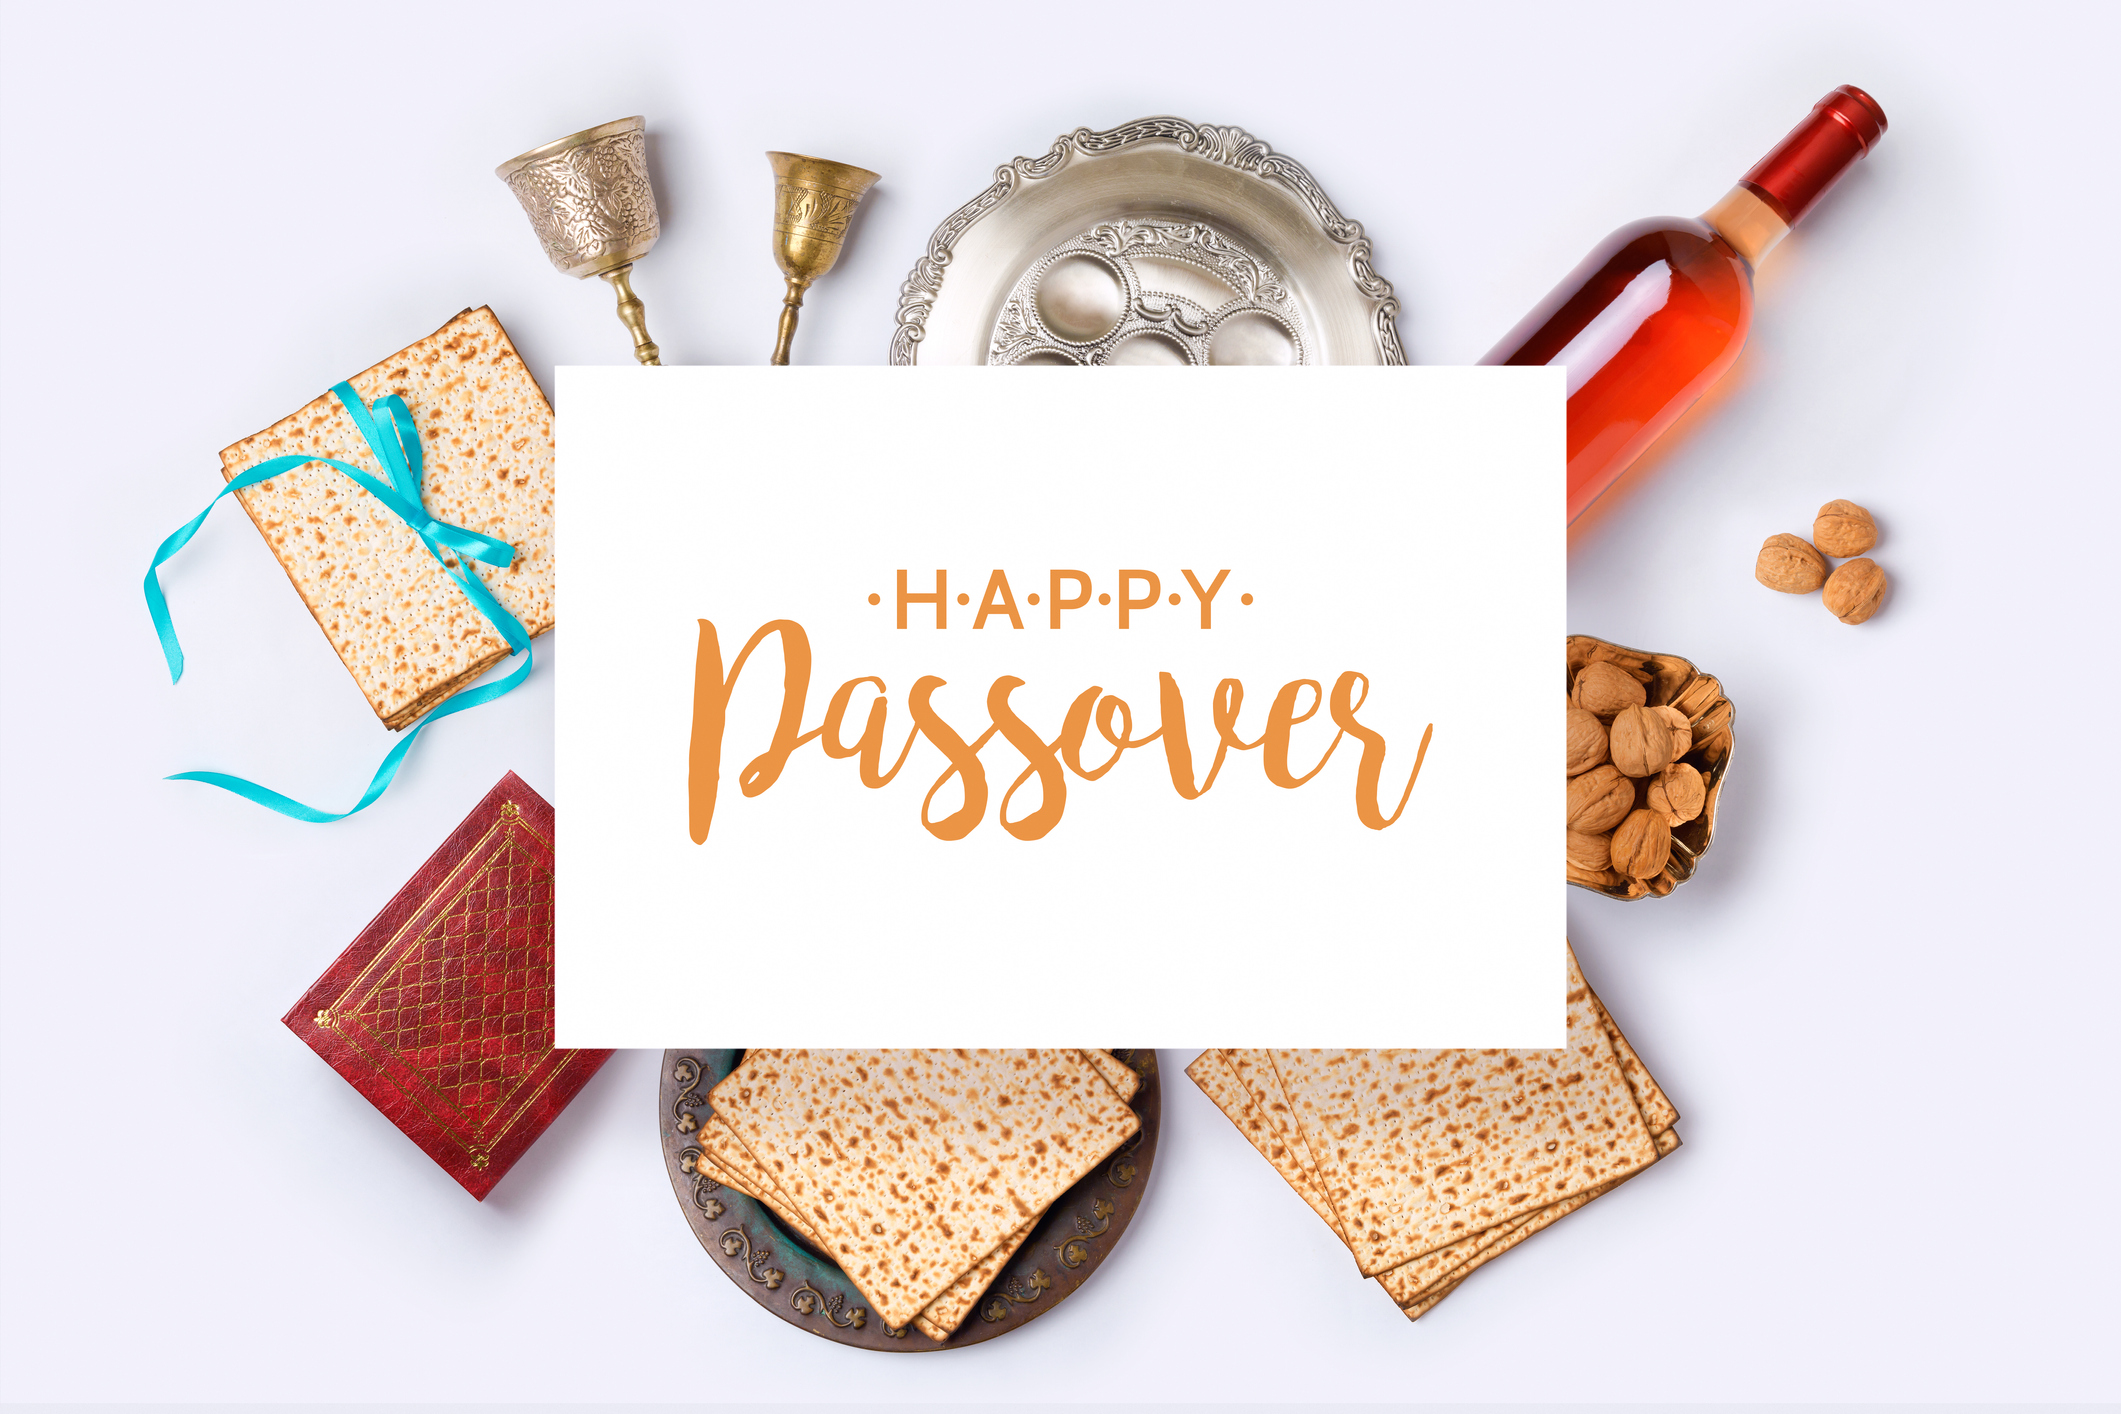 Jewish holiday Passover banner design with wine, matza and seder plate on white background. View from above. Flat lay (Jewish holiday Passover banner design with wine, matza and seder plate on white background. View from above. Flat lay, ASCII, 118 co